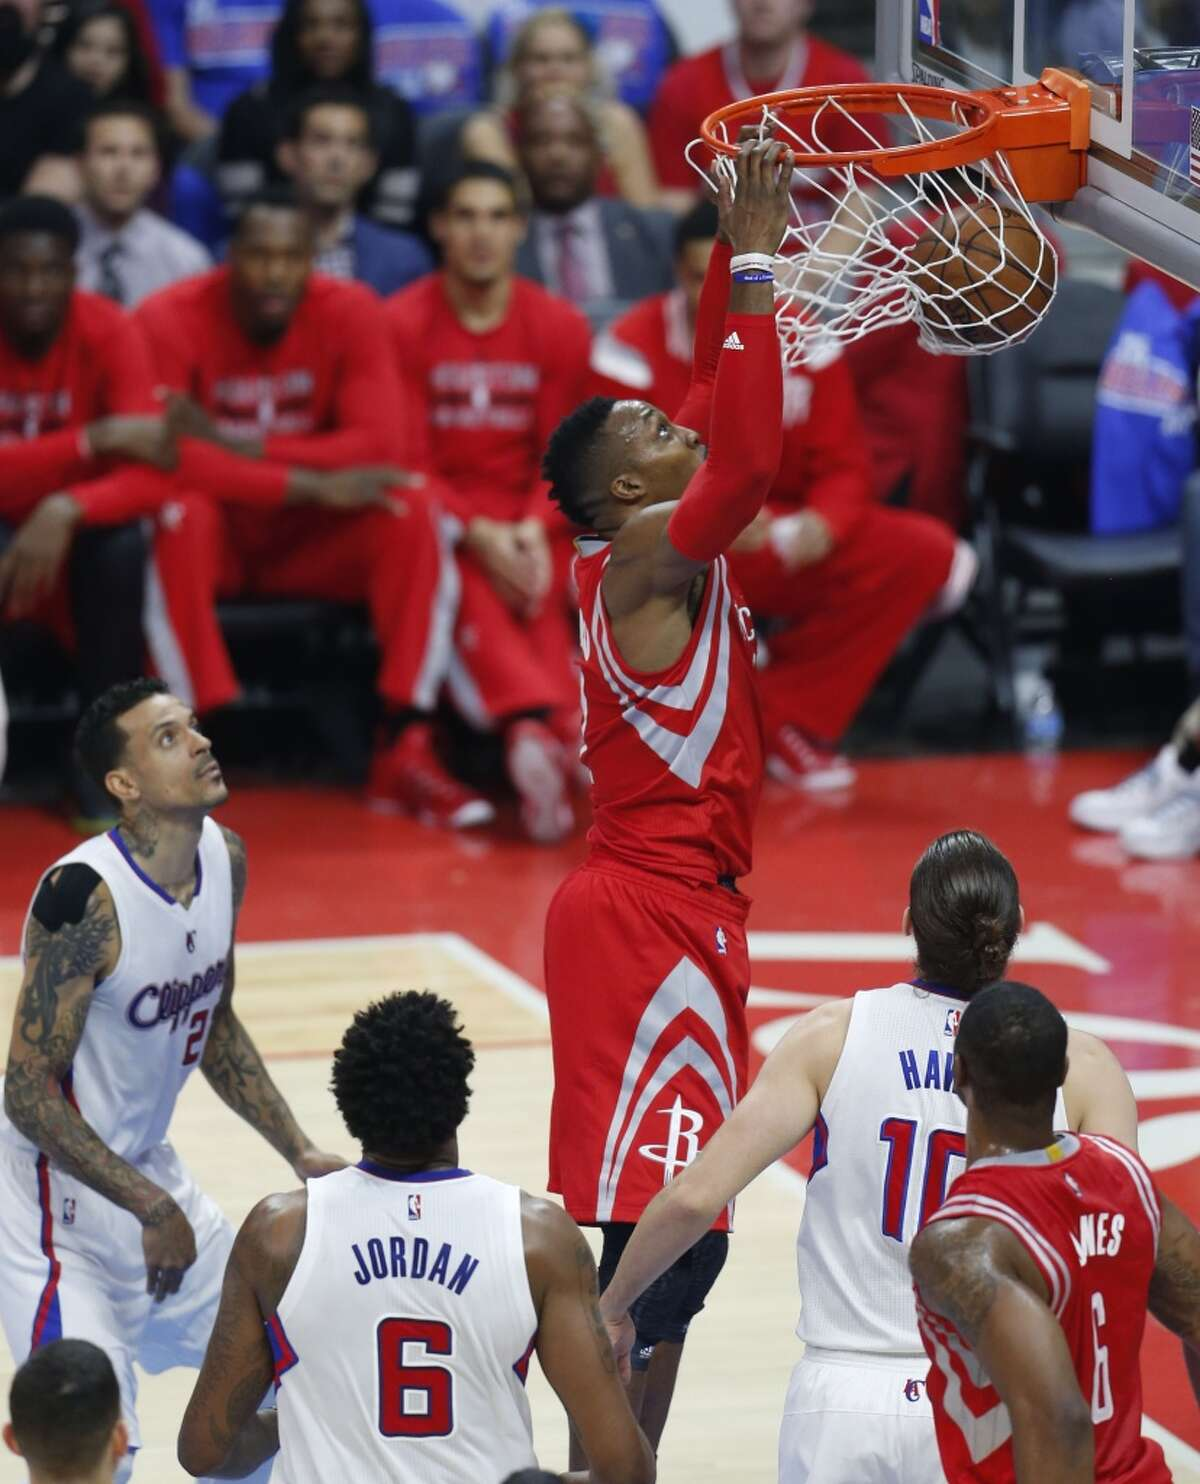 Houston Rockets center Dwight Howard (12) dunks against the Los Angeles Clippers during the first half of Game 6 of the NBA Western Conference semifinals at Staples Center on Thursday, May 14, 2015, in Los Angeles. ( Karen Warren / Houston Chronicle )